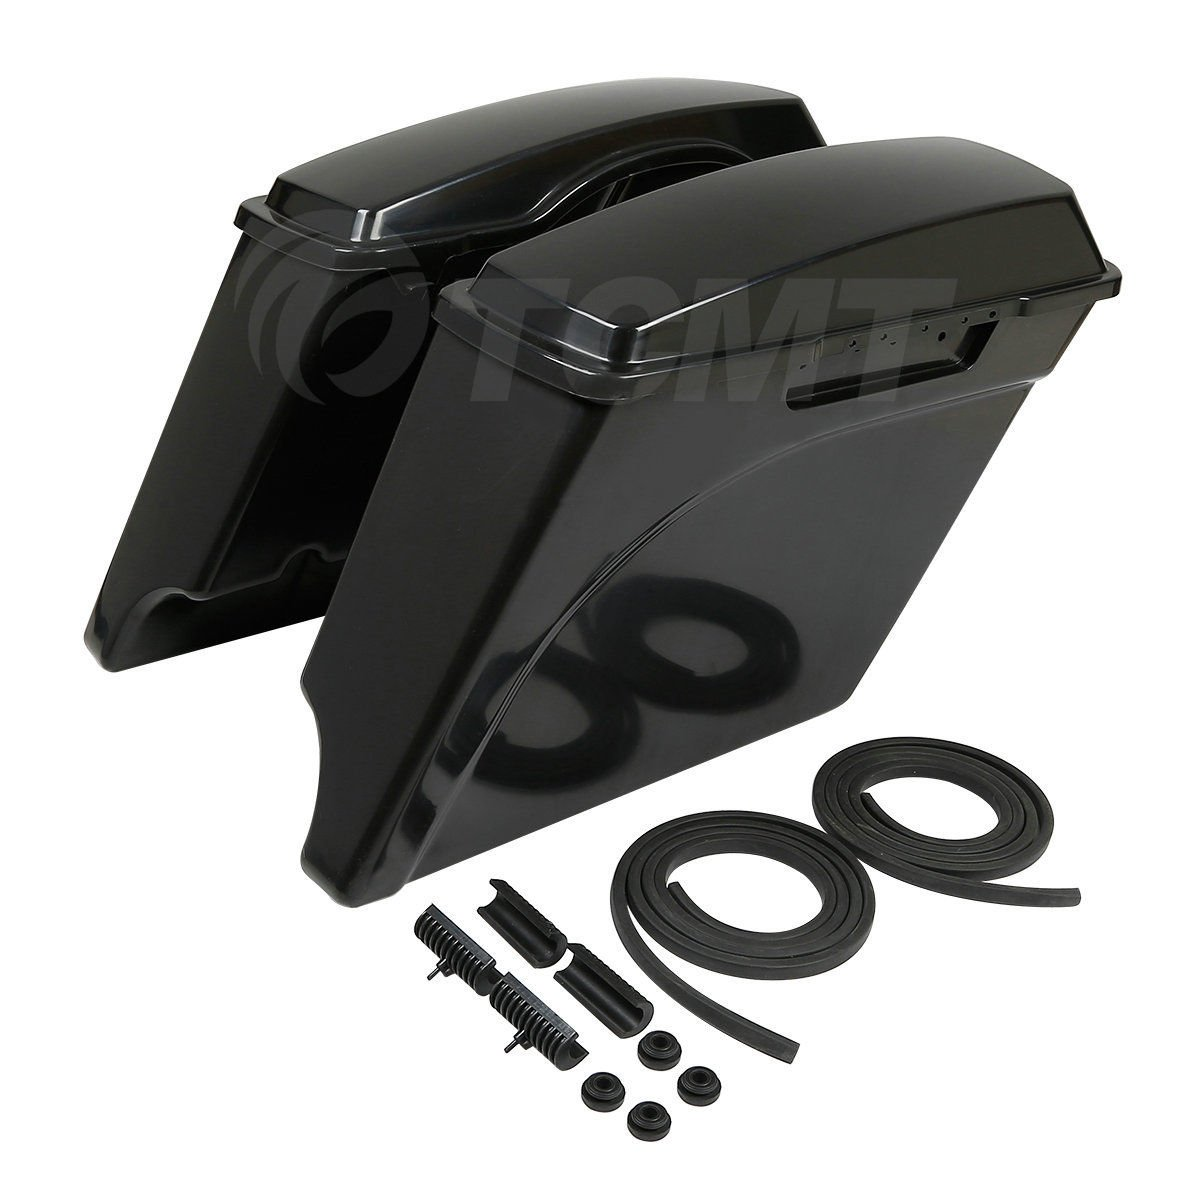 TCMT Unpainted 5'' Stretched Extended Hard Saddlebags Fits For Harley Touring Models 93-13